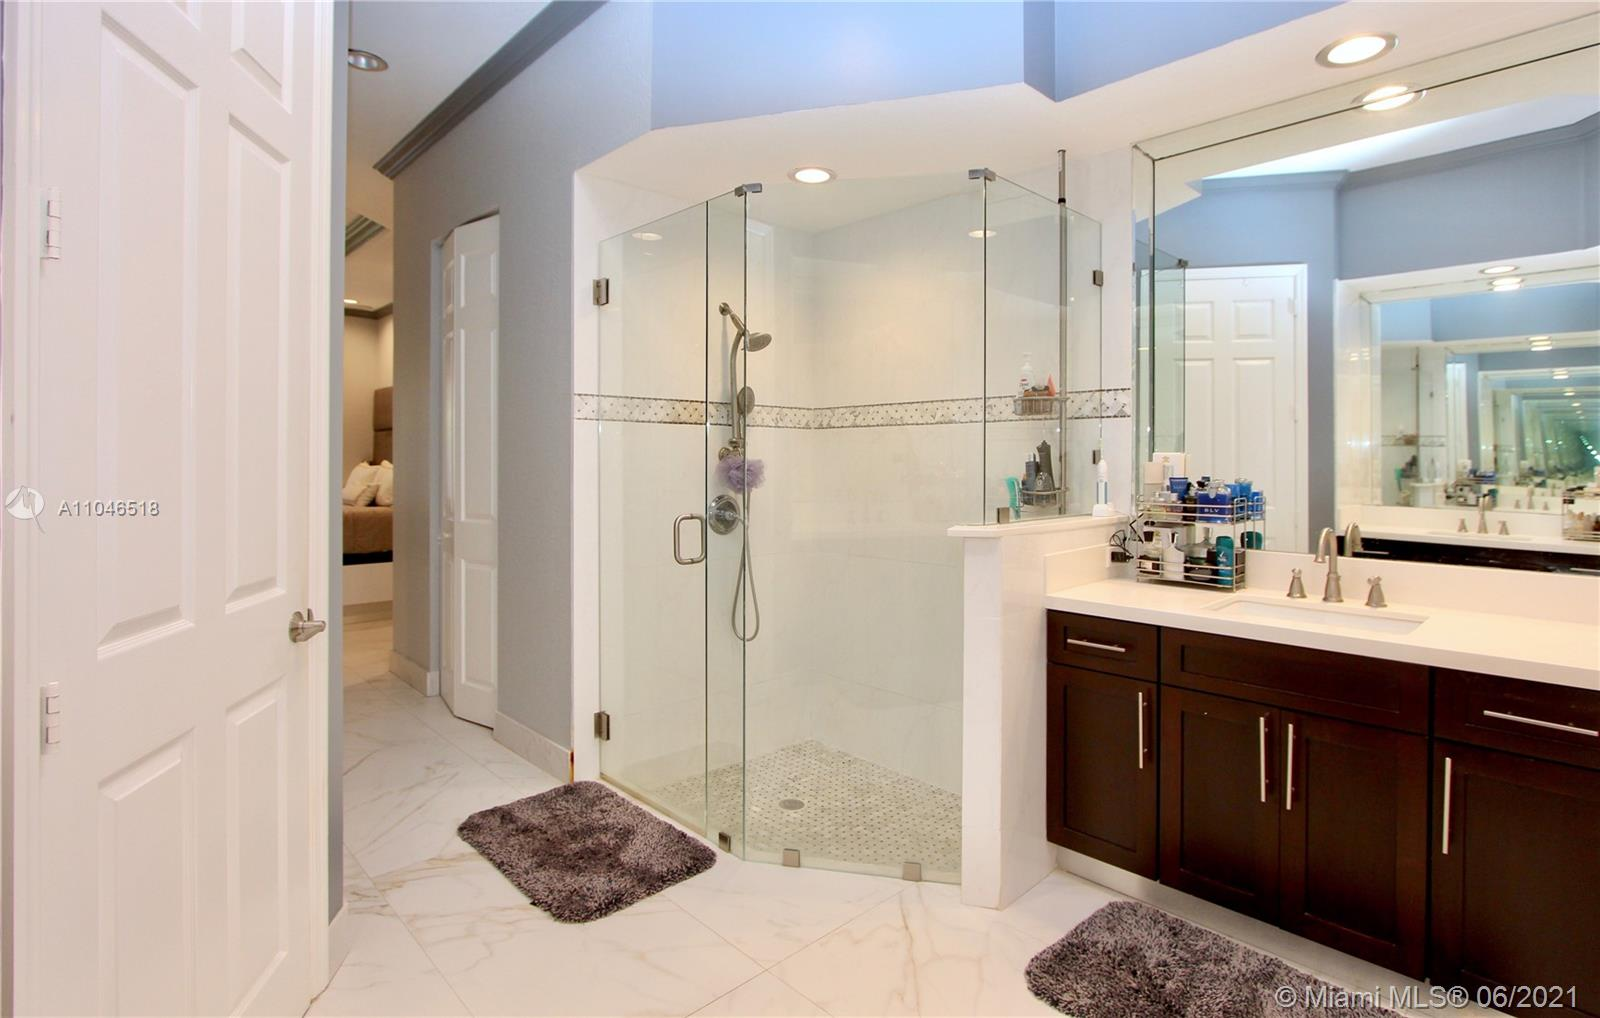 Photo of 867 Spinnaker Dr W, Hollywood, Florida, 33019 -